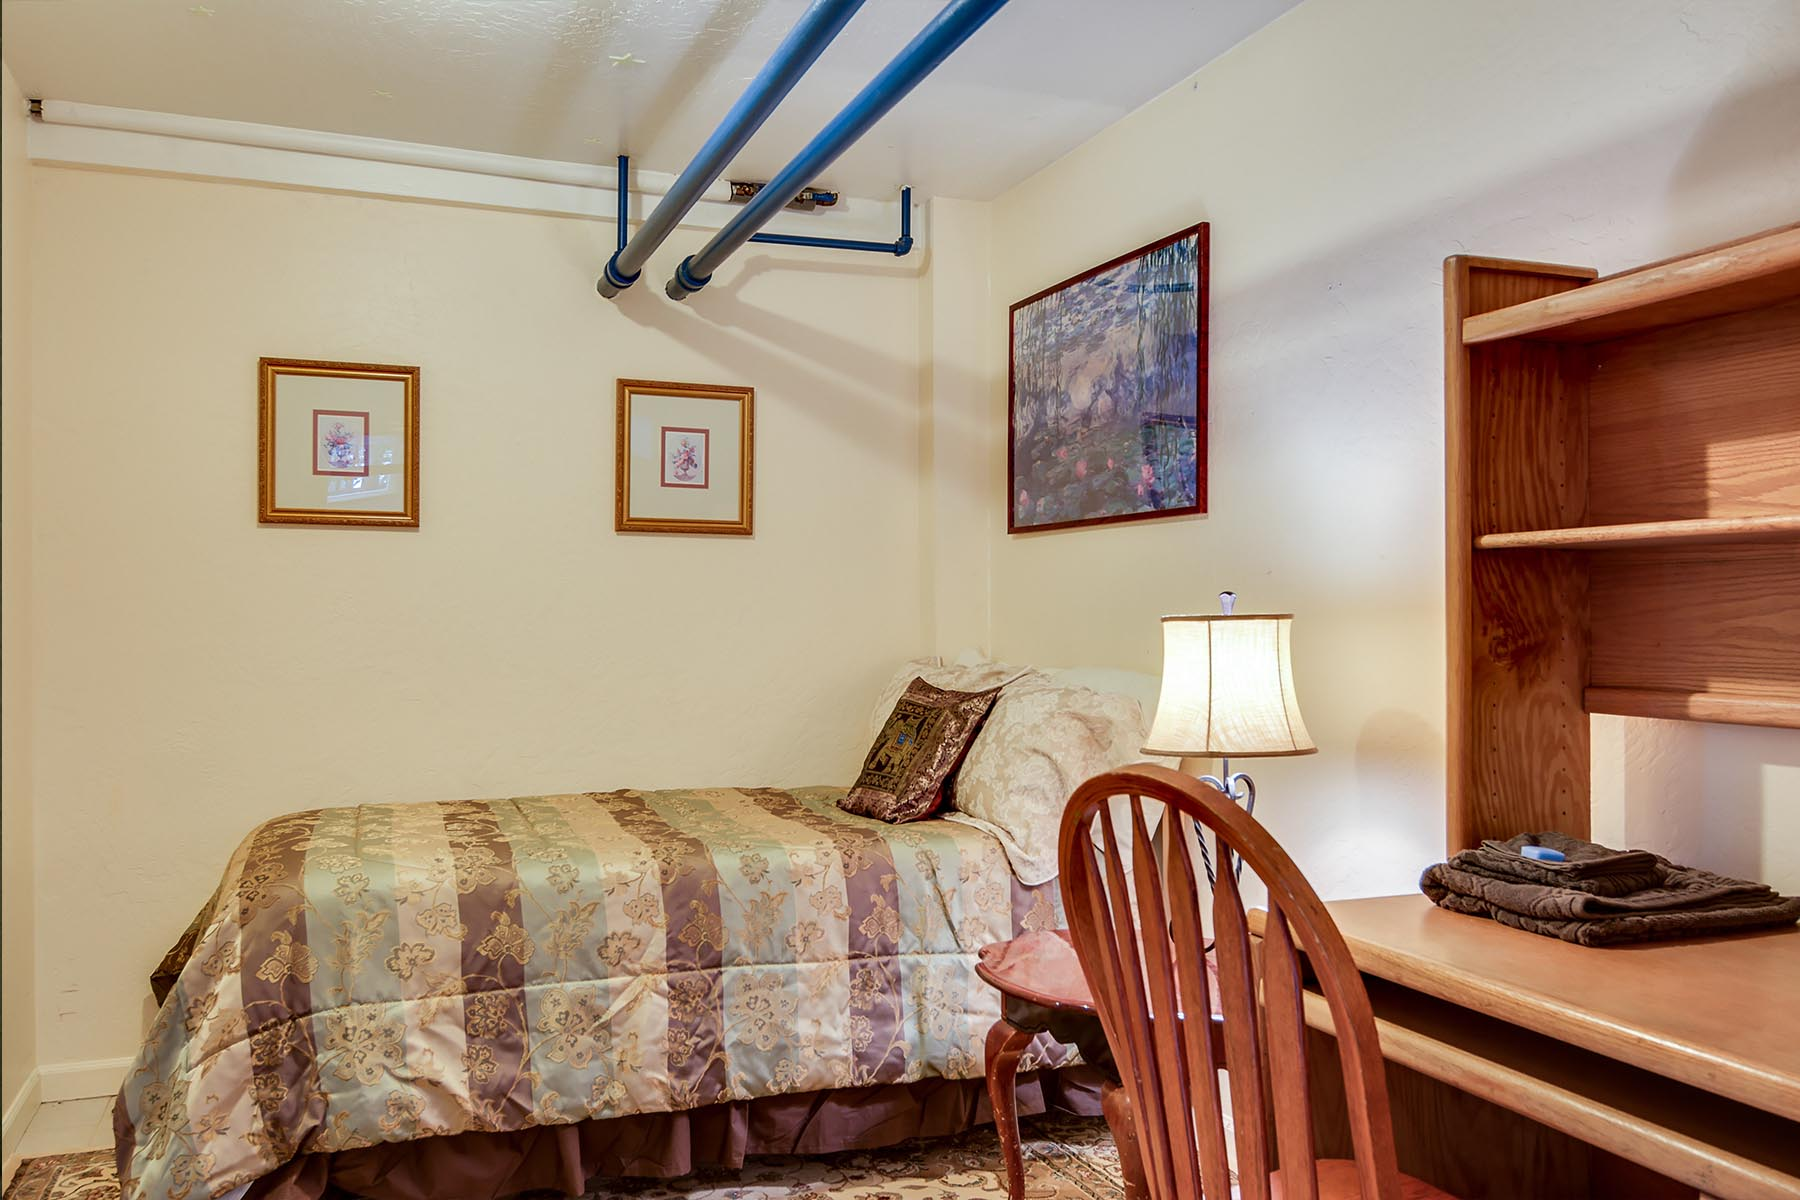 1955 University Street House | Bed & Breakfast - Bedroom